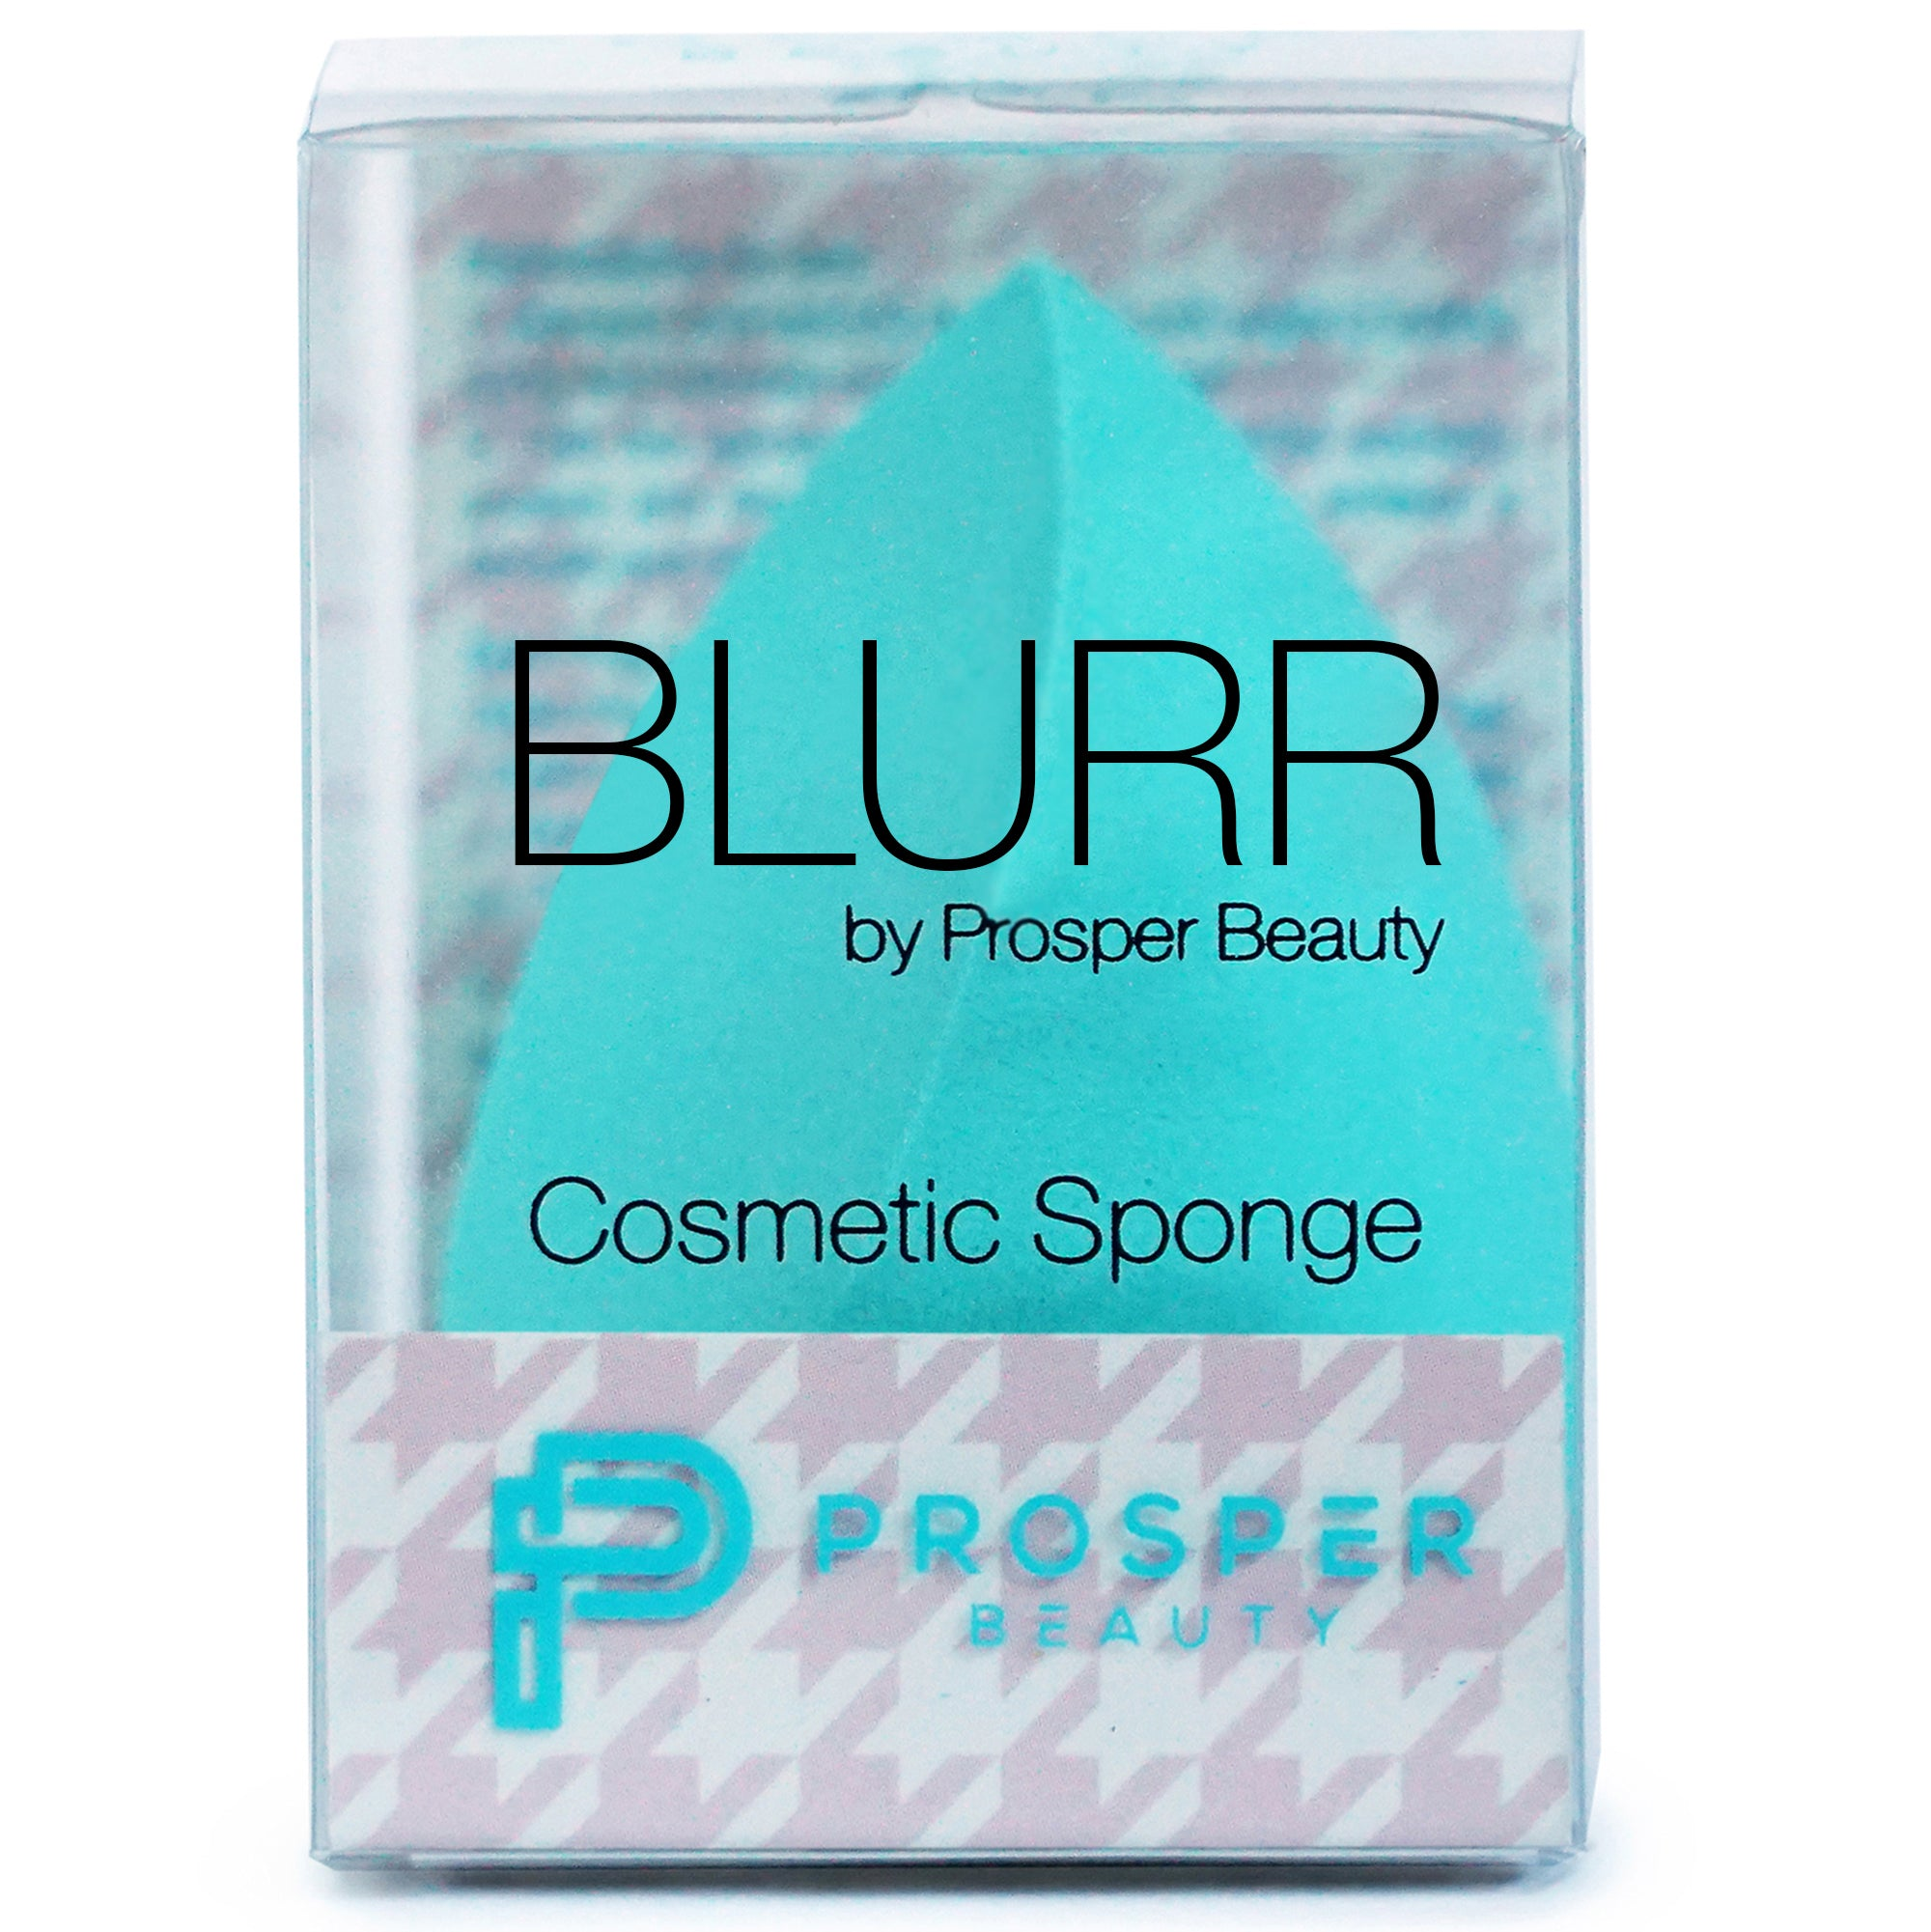 BLURR by Prosper Beauty (Cosmetic Sponge)